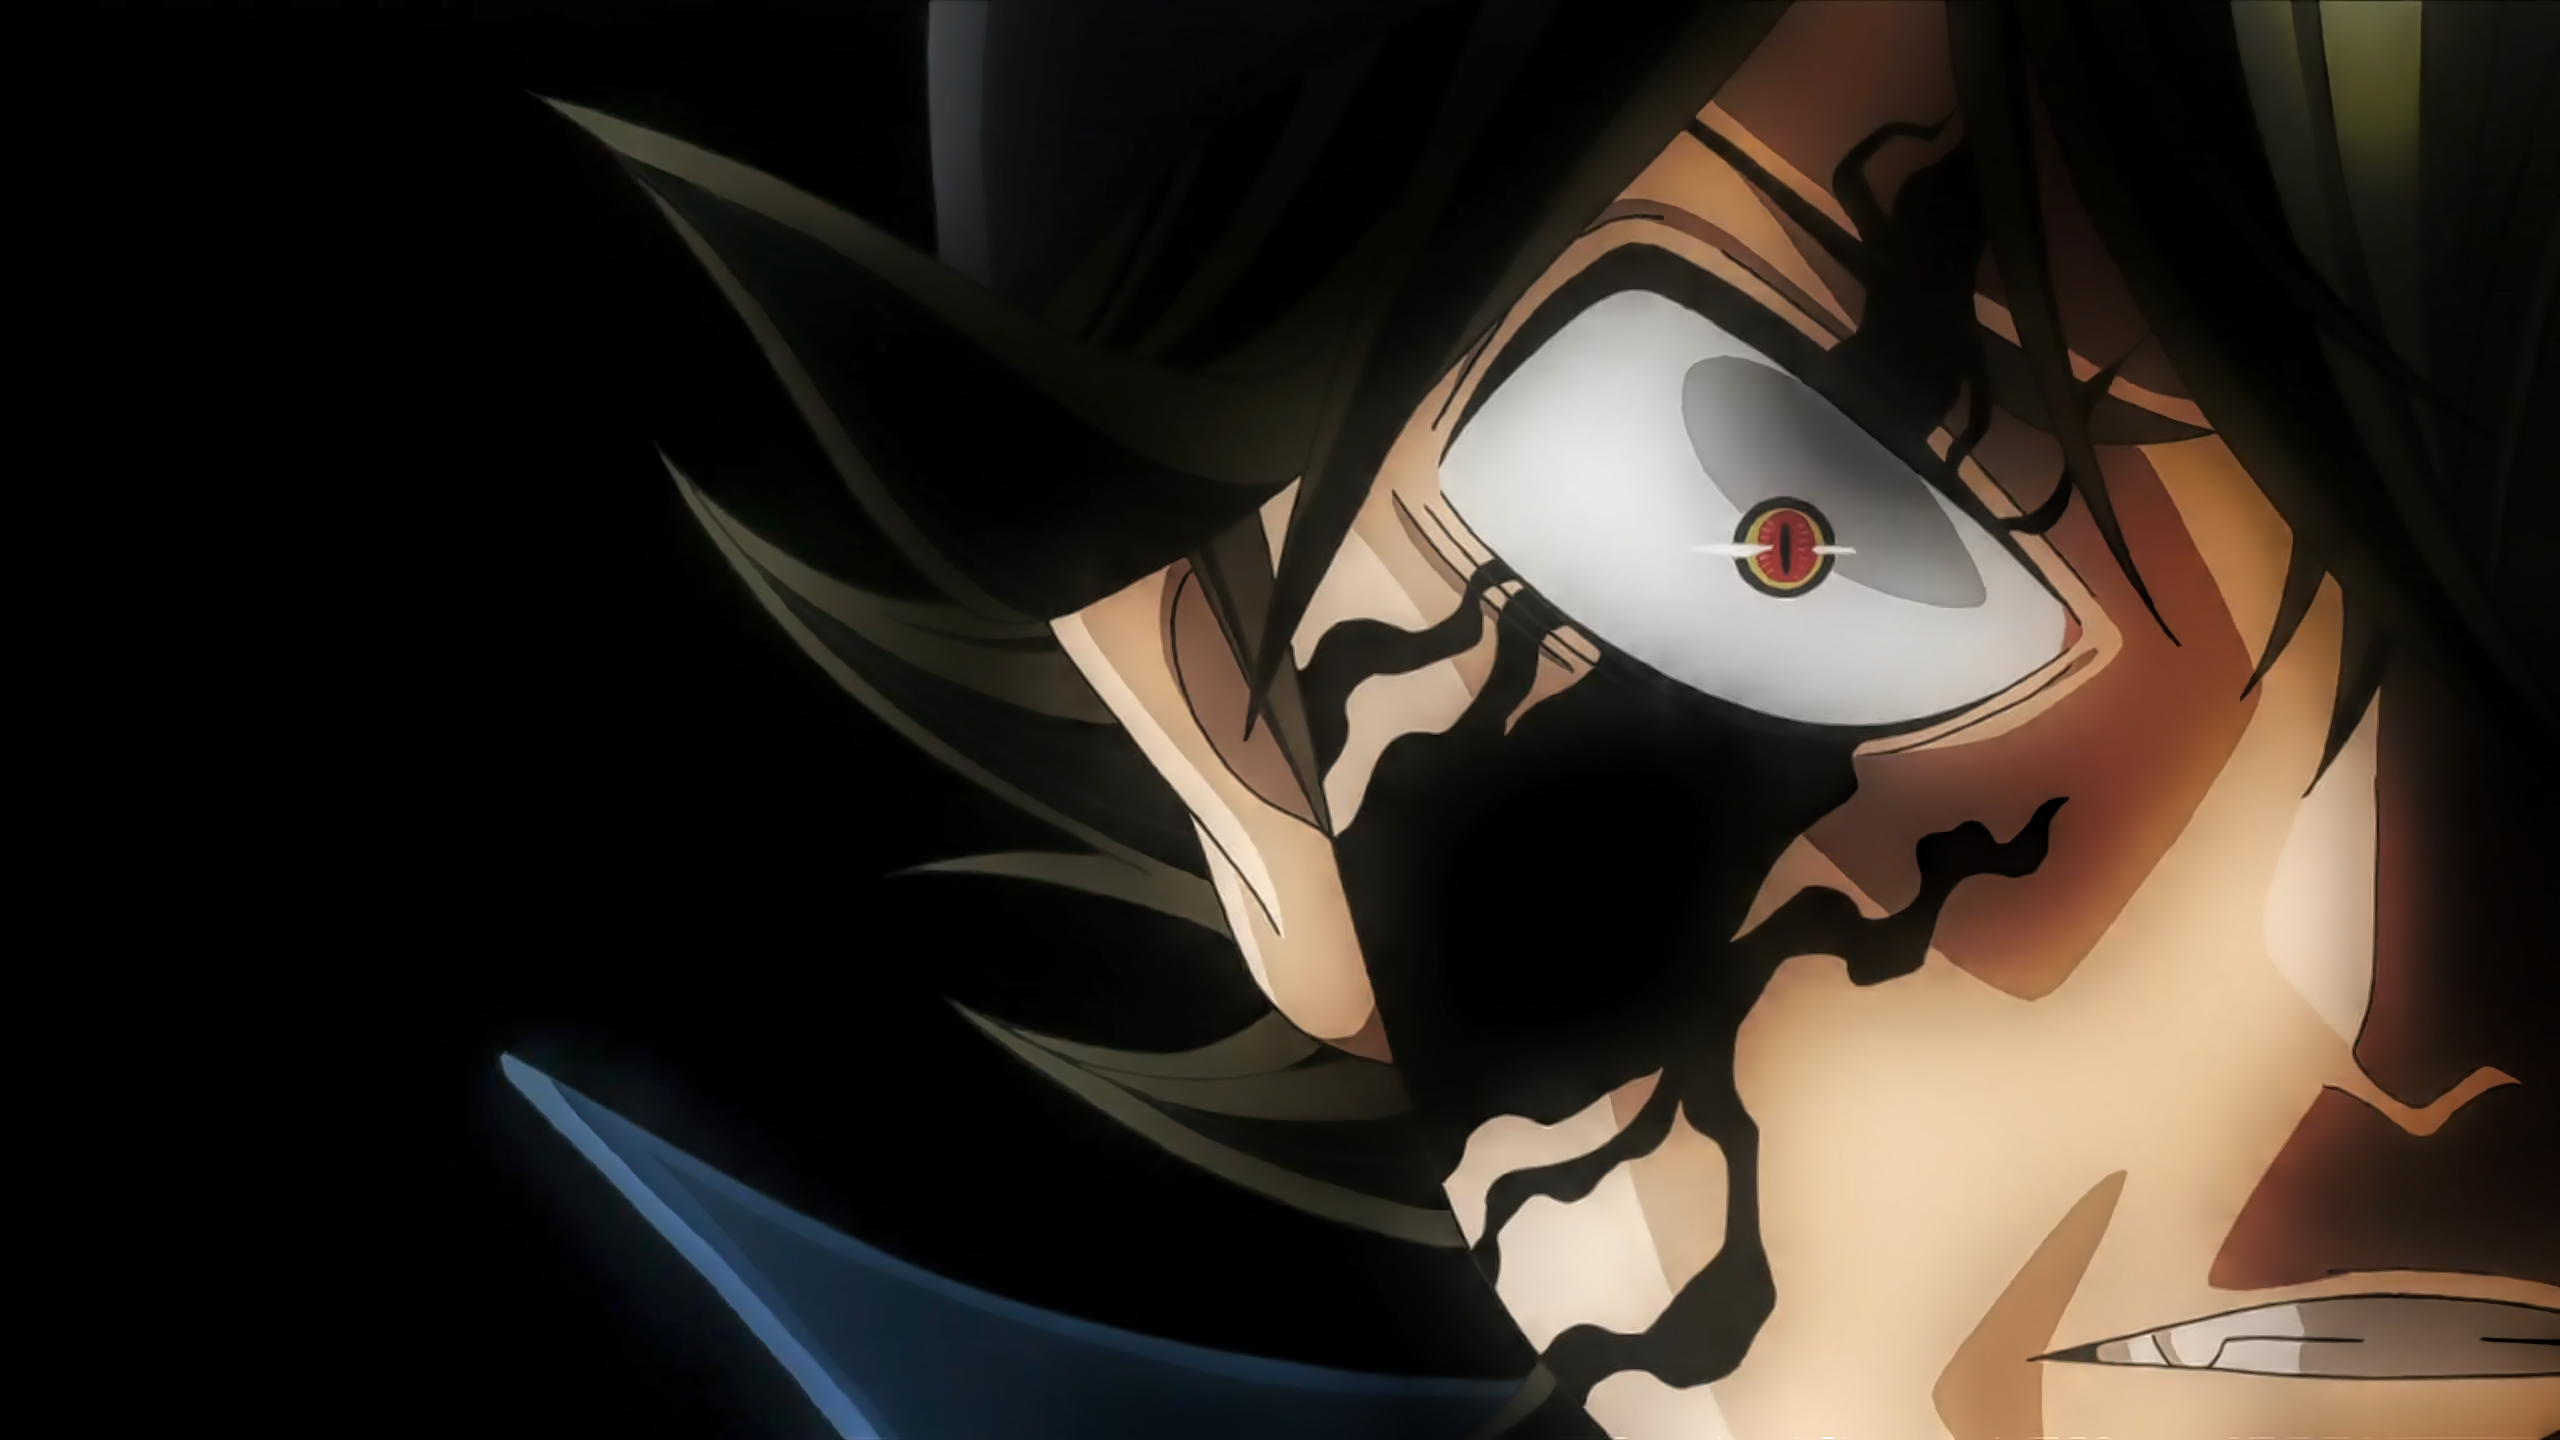 Asta S Demon Glimpse Hd Wallpaper Background Image 2560x1440 Id 947906 Wallpaper Abyss